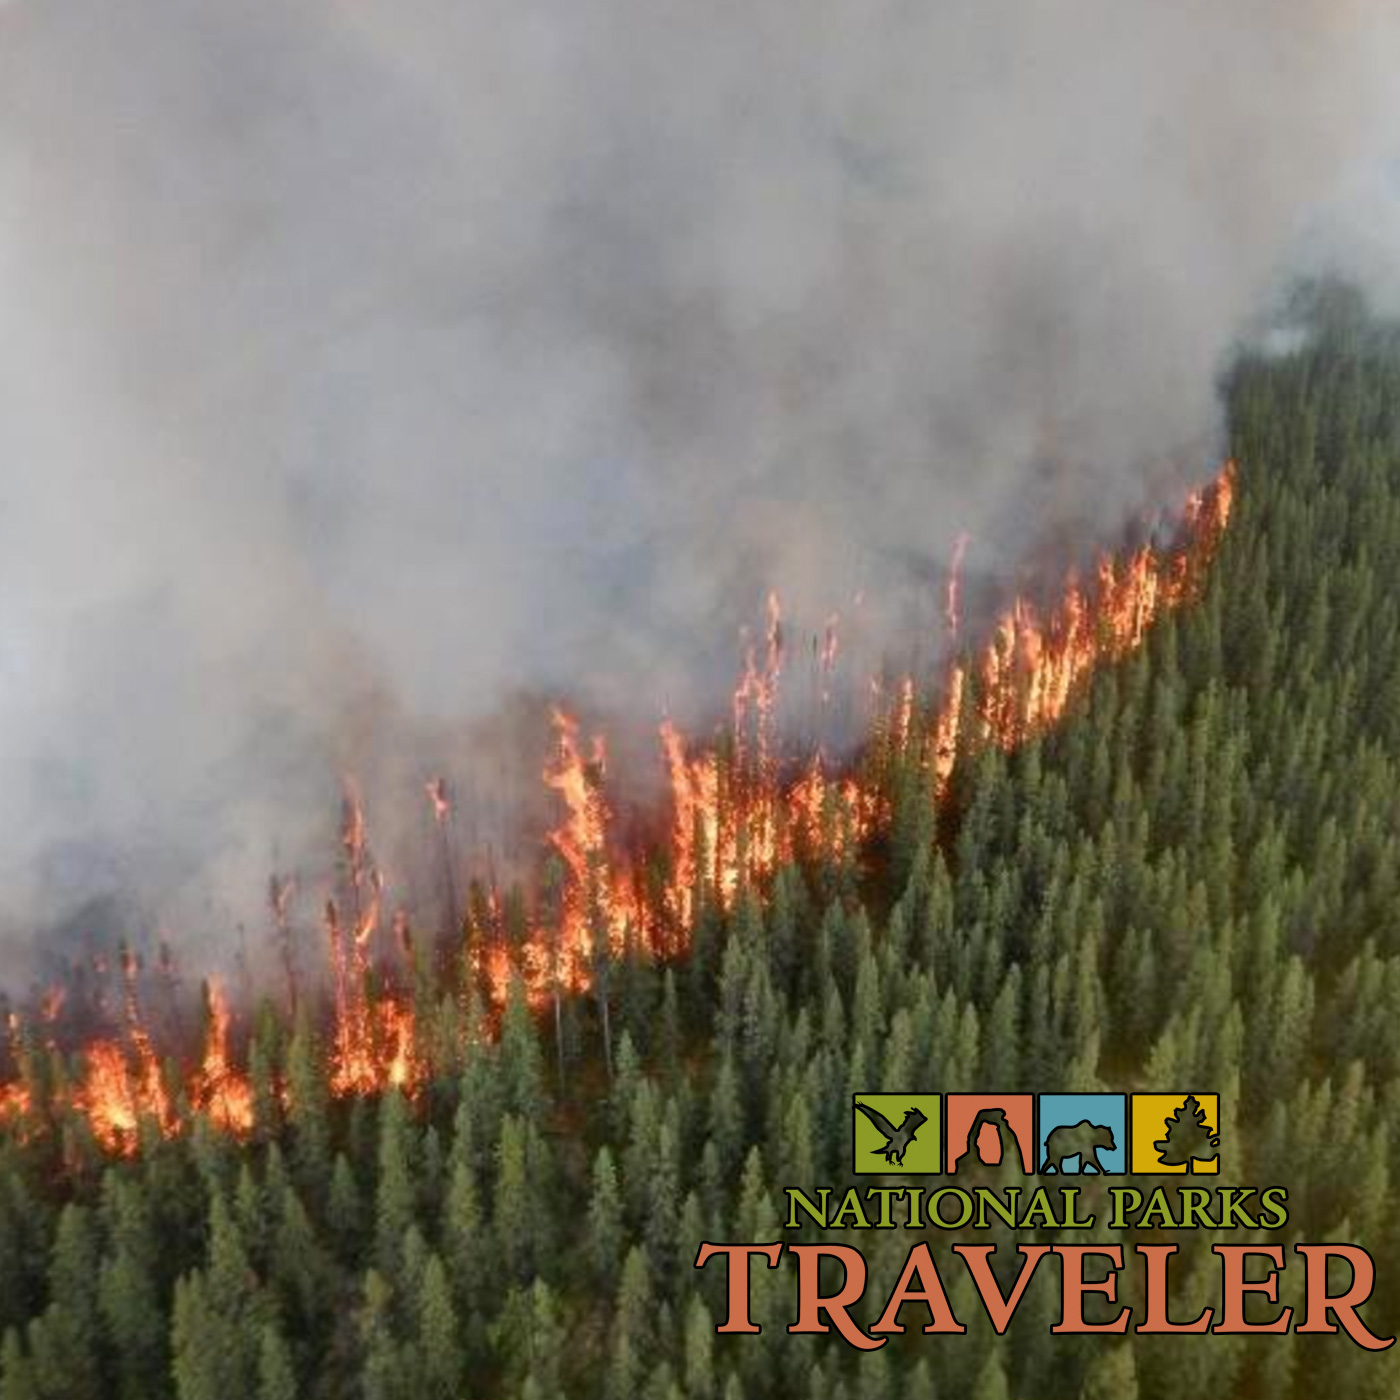 Artwork for National Parks Traveler: Using Satellites To Spot Wildfires In National Parks